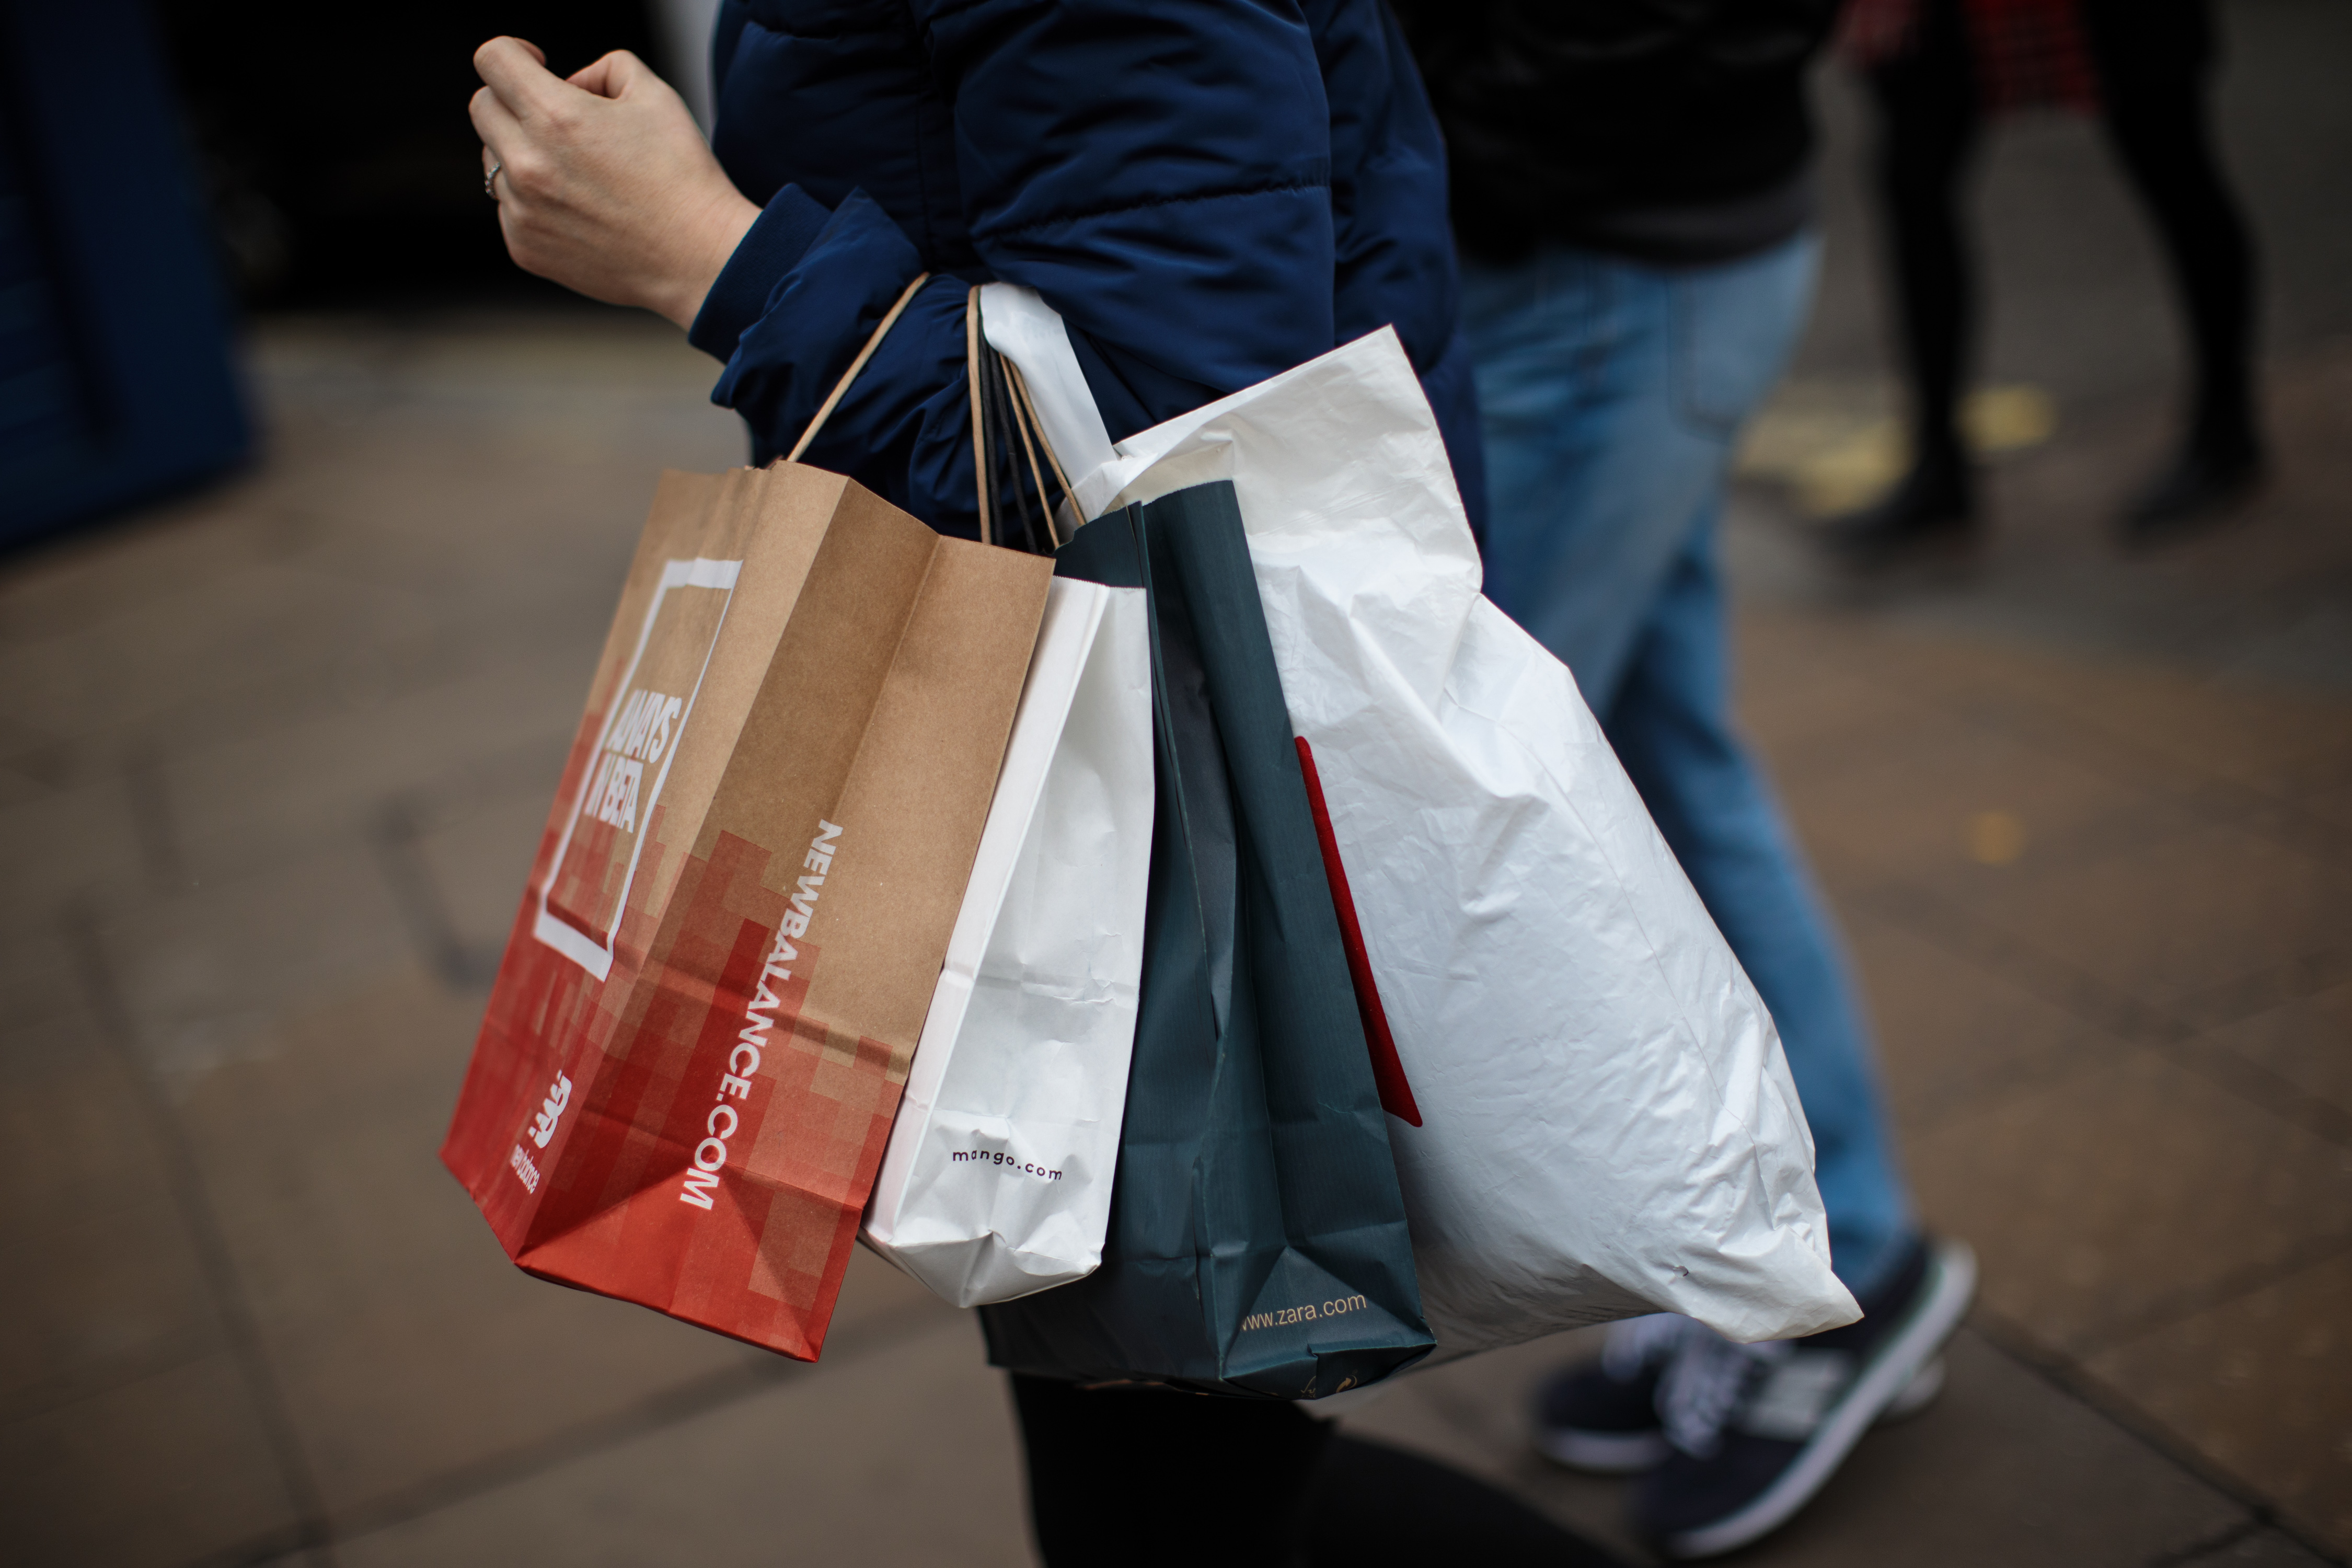 A person carries four shopping bags on their arm.